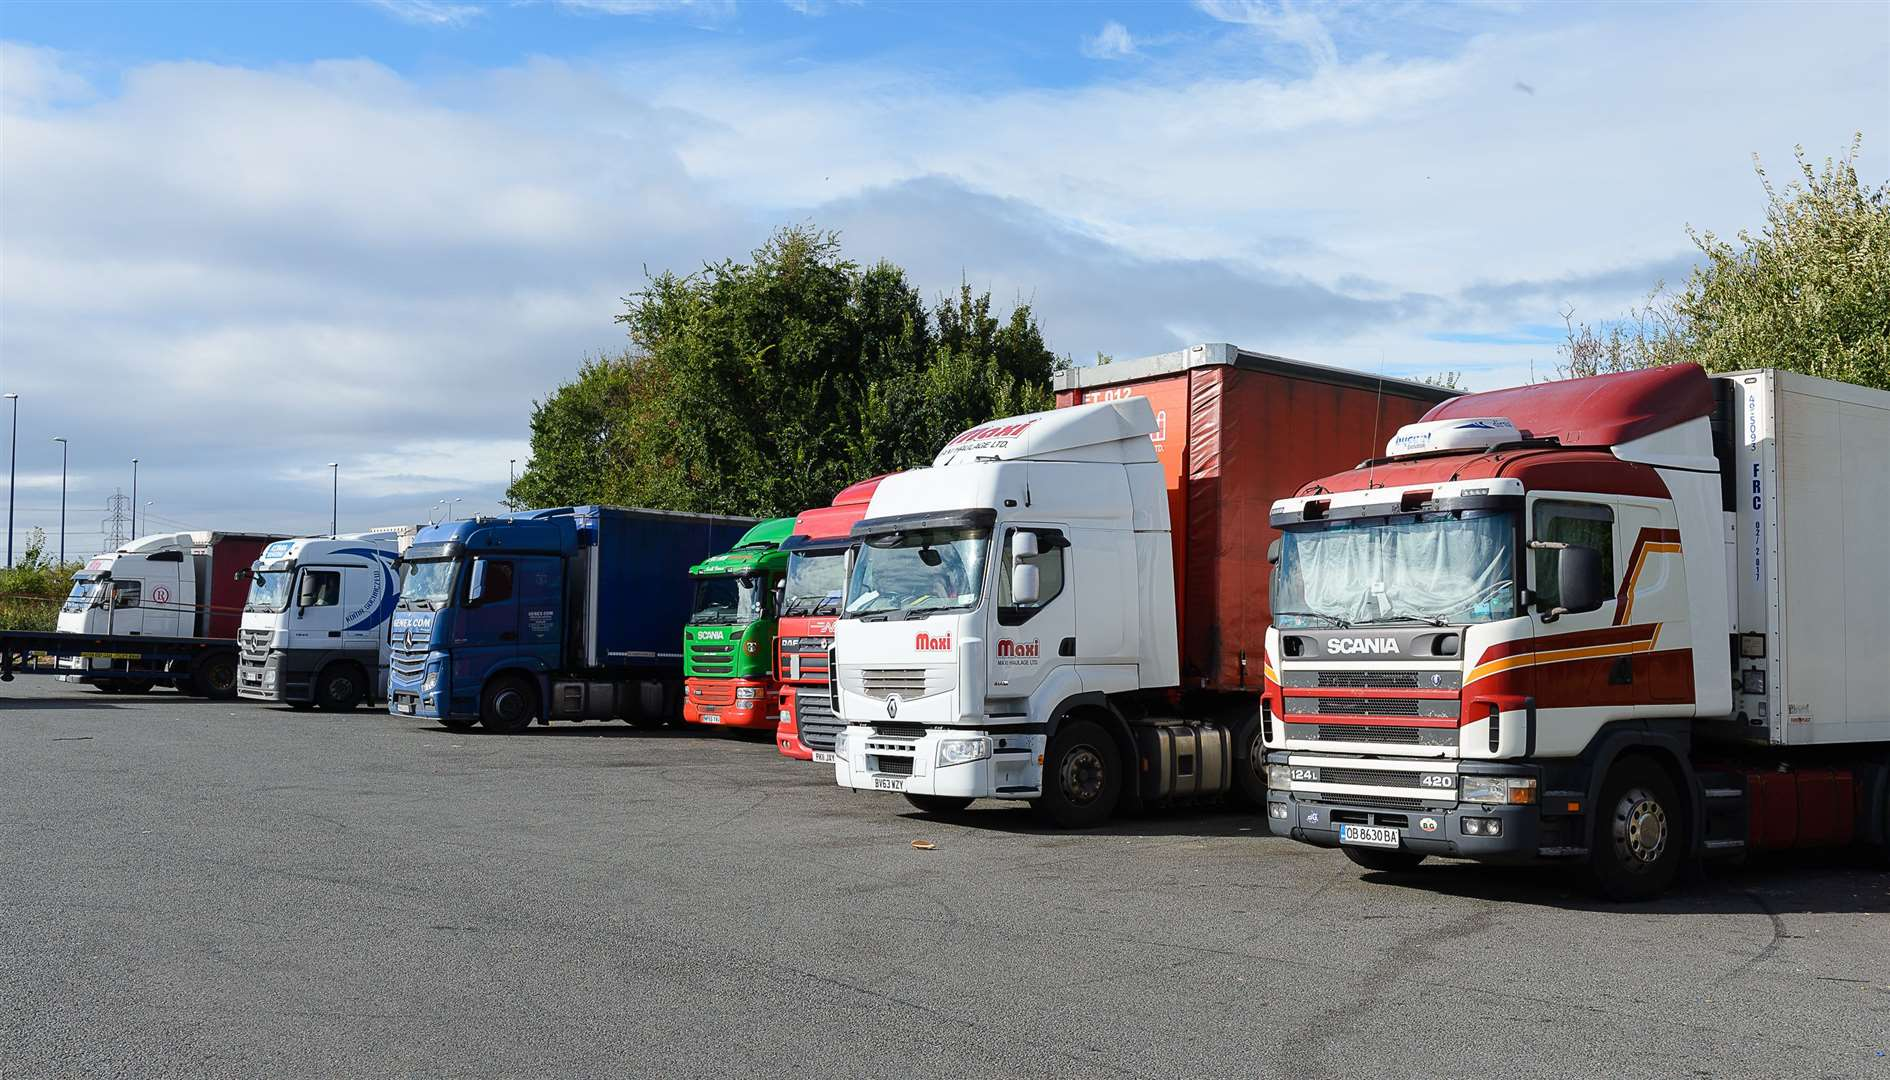 Up to 2,000 lorries could be held on the site